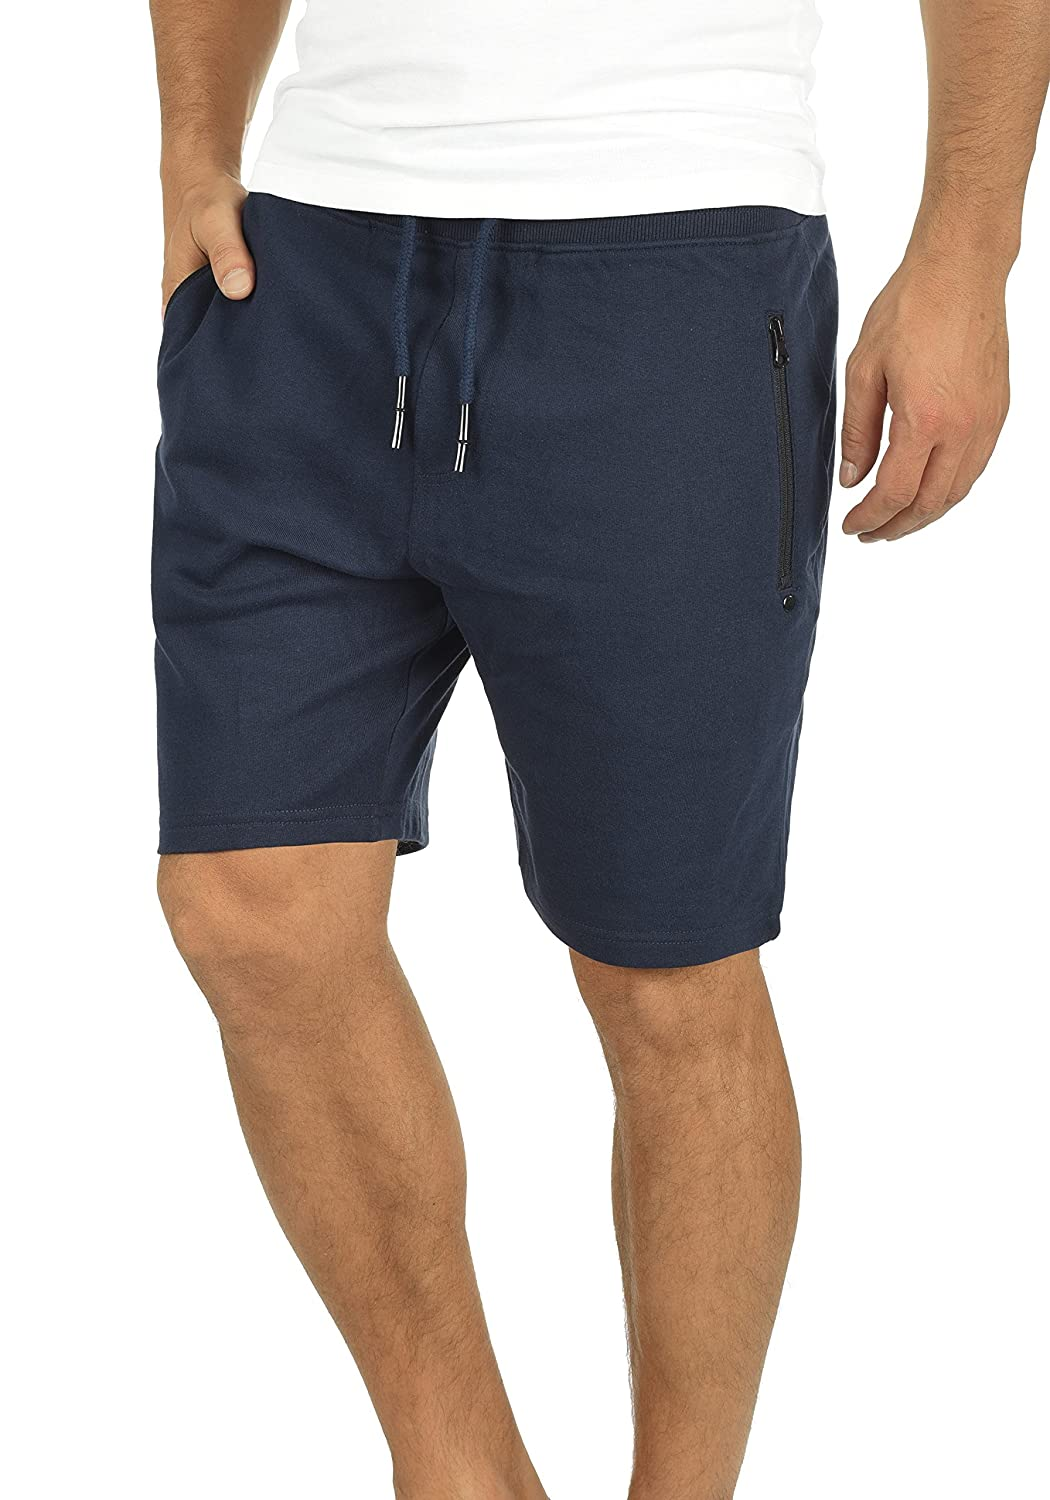 !Solid Taras Short en Sweat Bermuda Jogging Pantalon Court pour Homme